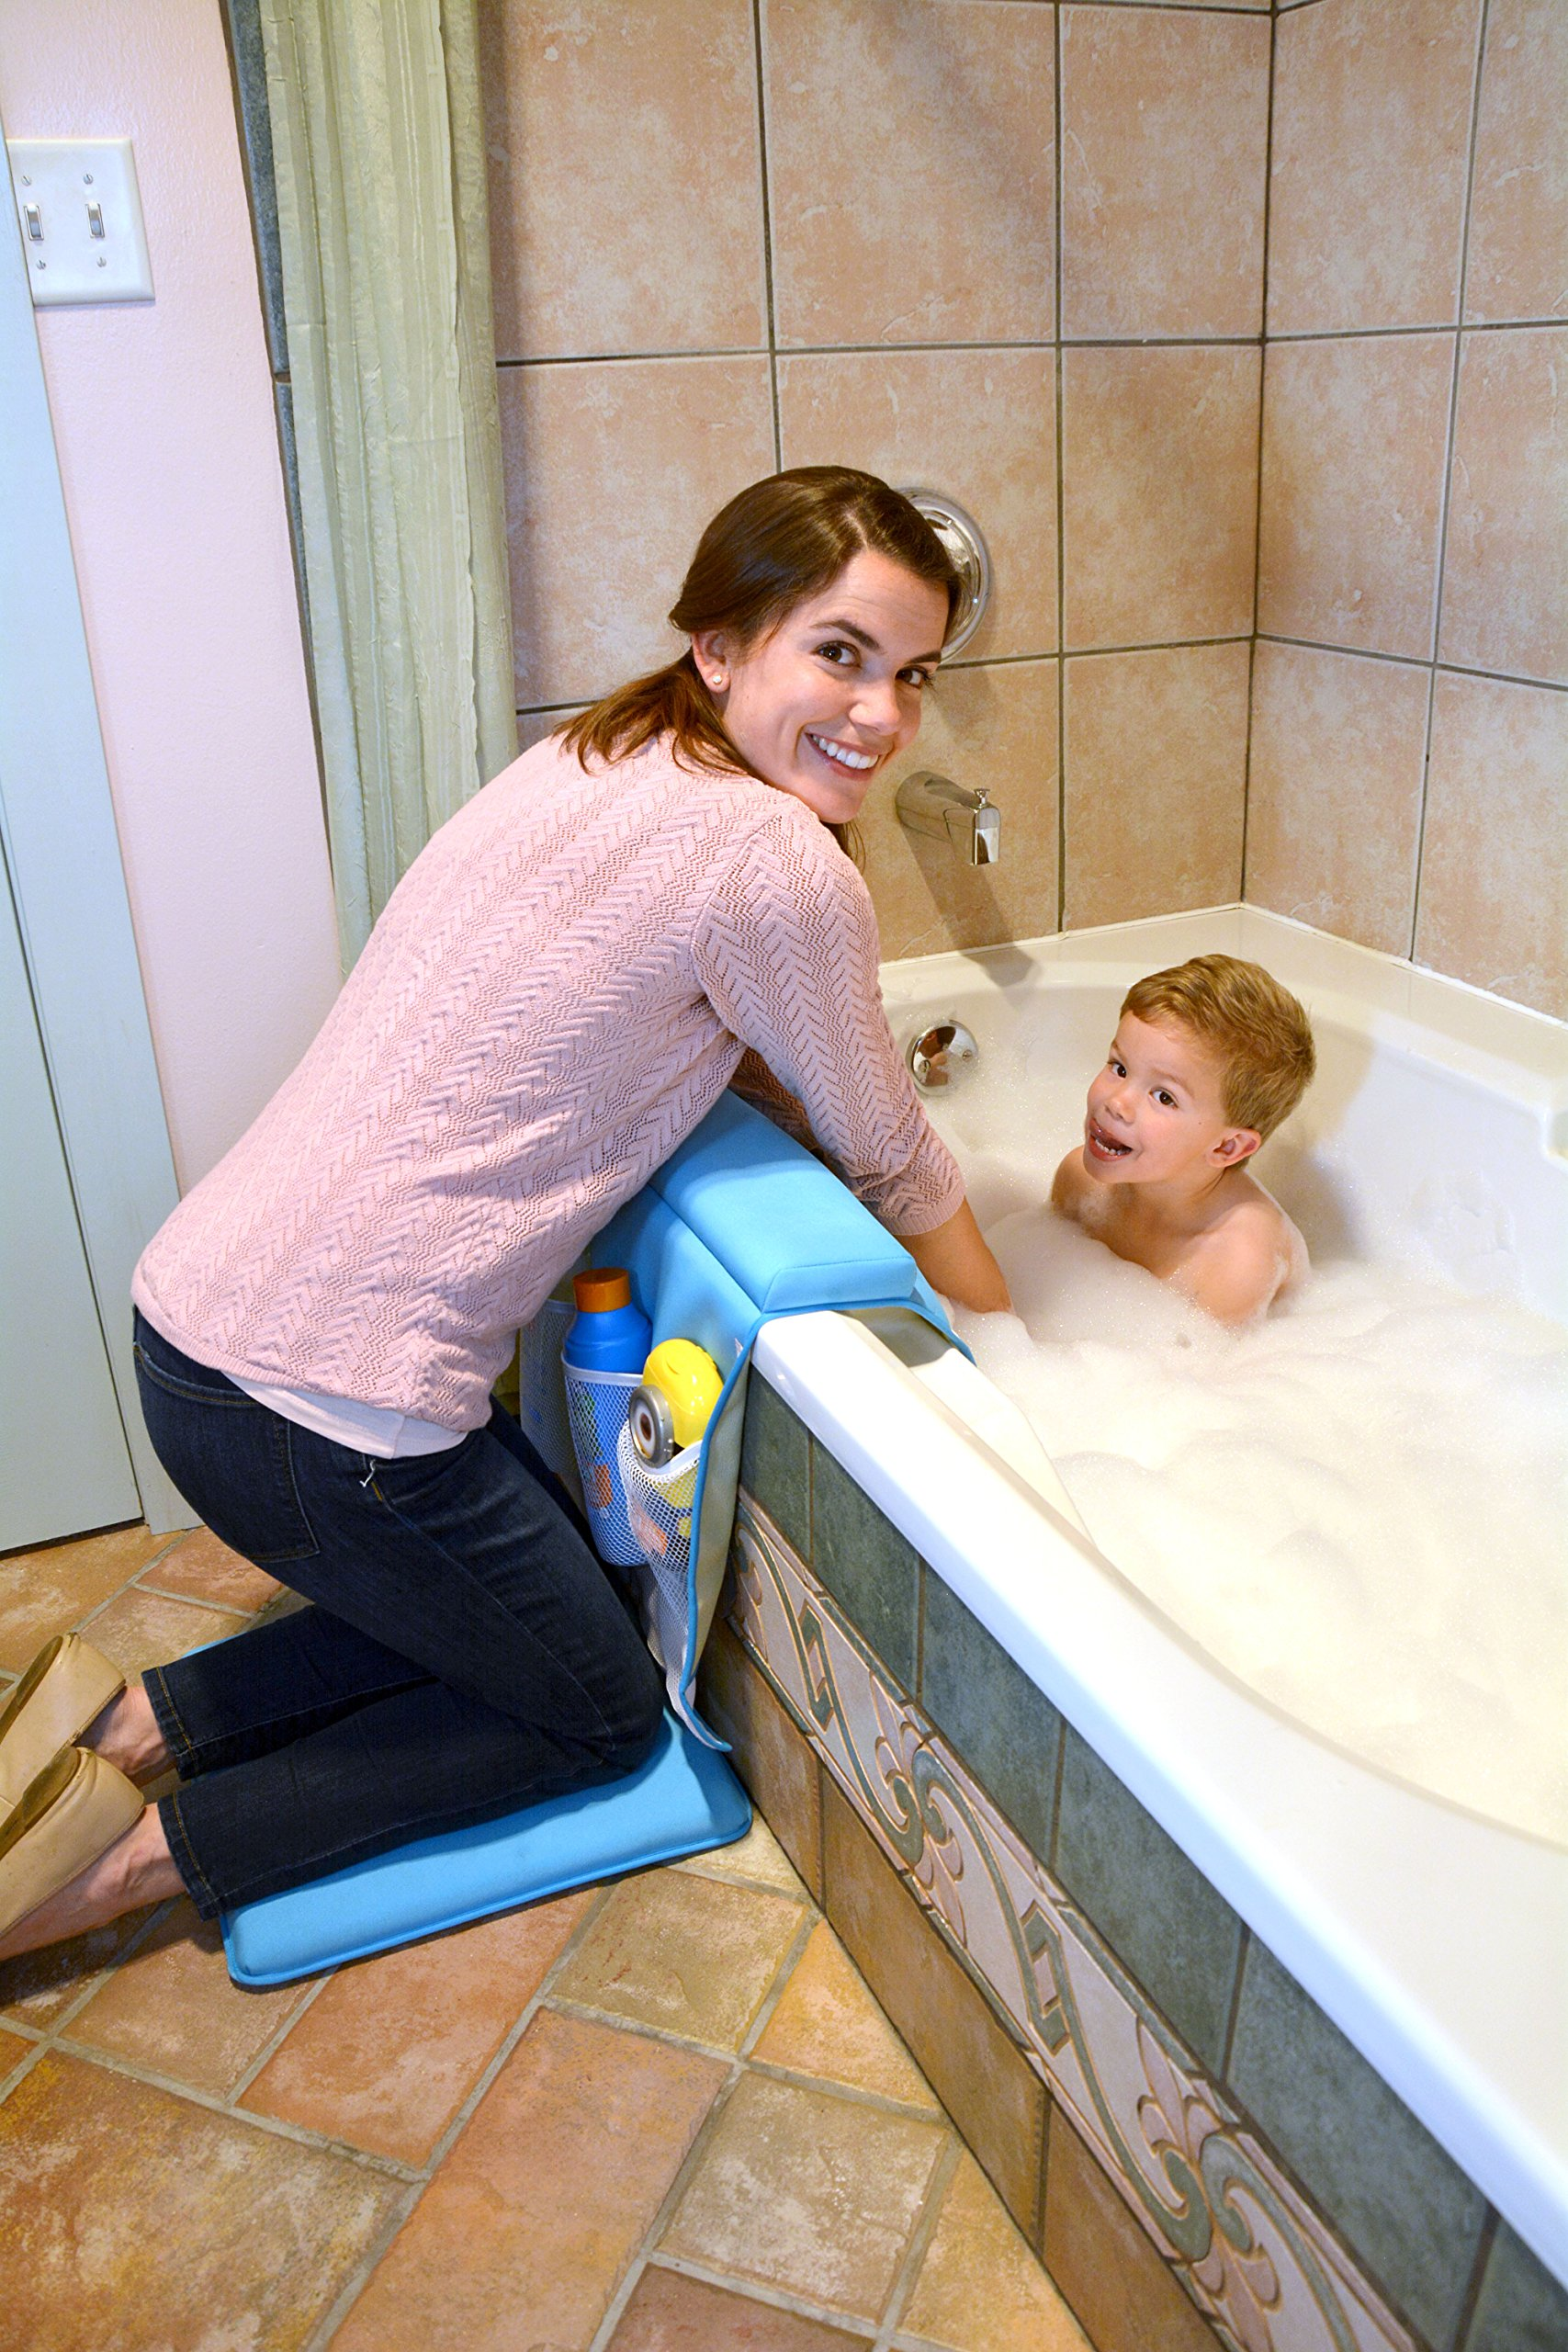 Life Upgrade Bath Kneeler in Blue - Padded Knee and Elbow Baby Bath Tub Cushion Mat with Pockets by Life Upgrade (Image #2)